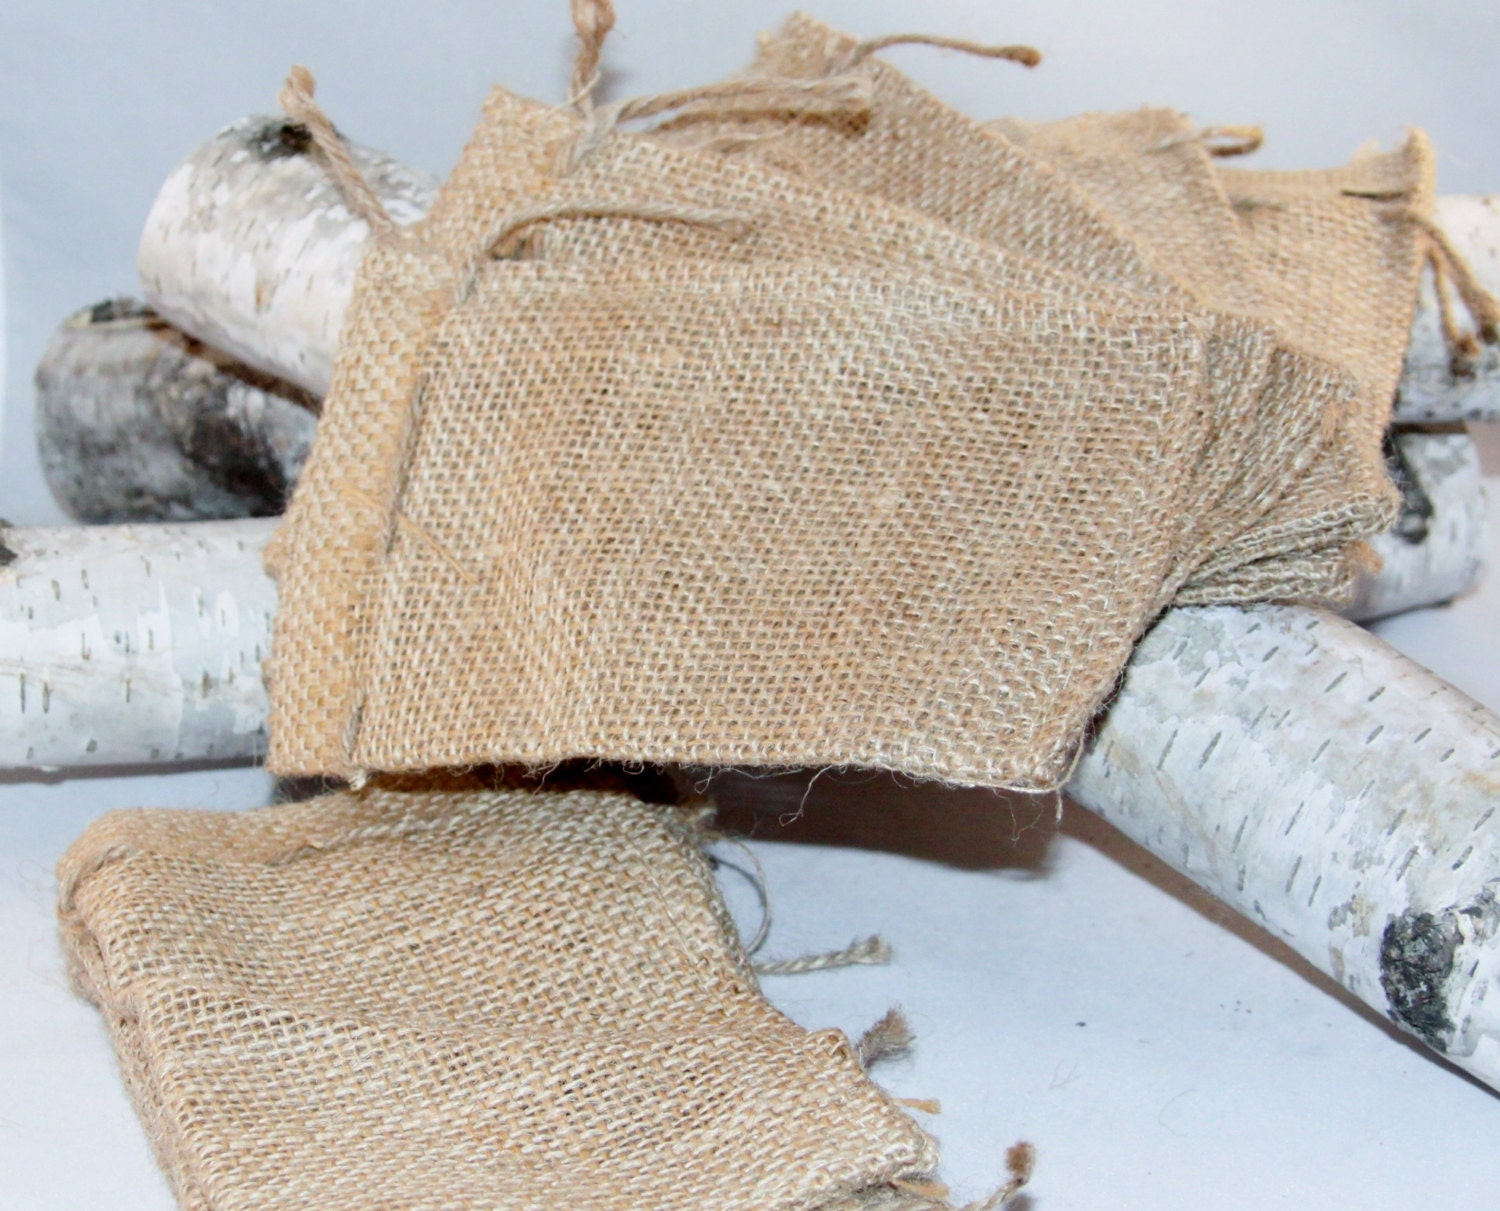 10 Burlap Gift Bags 6x10 For Party Favors With Drawstring Jute ...